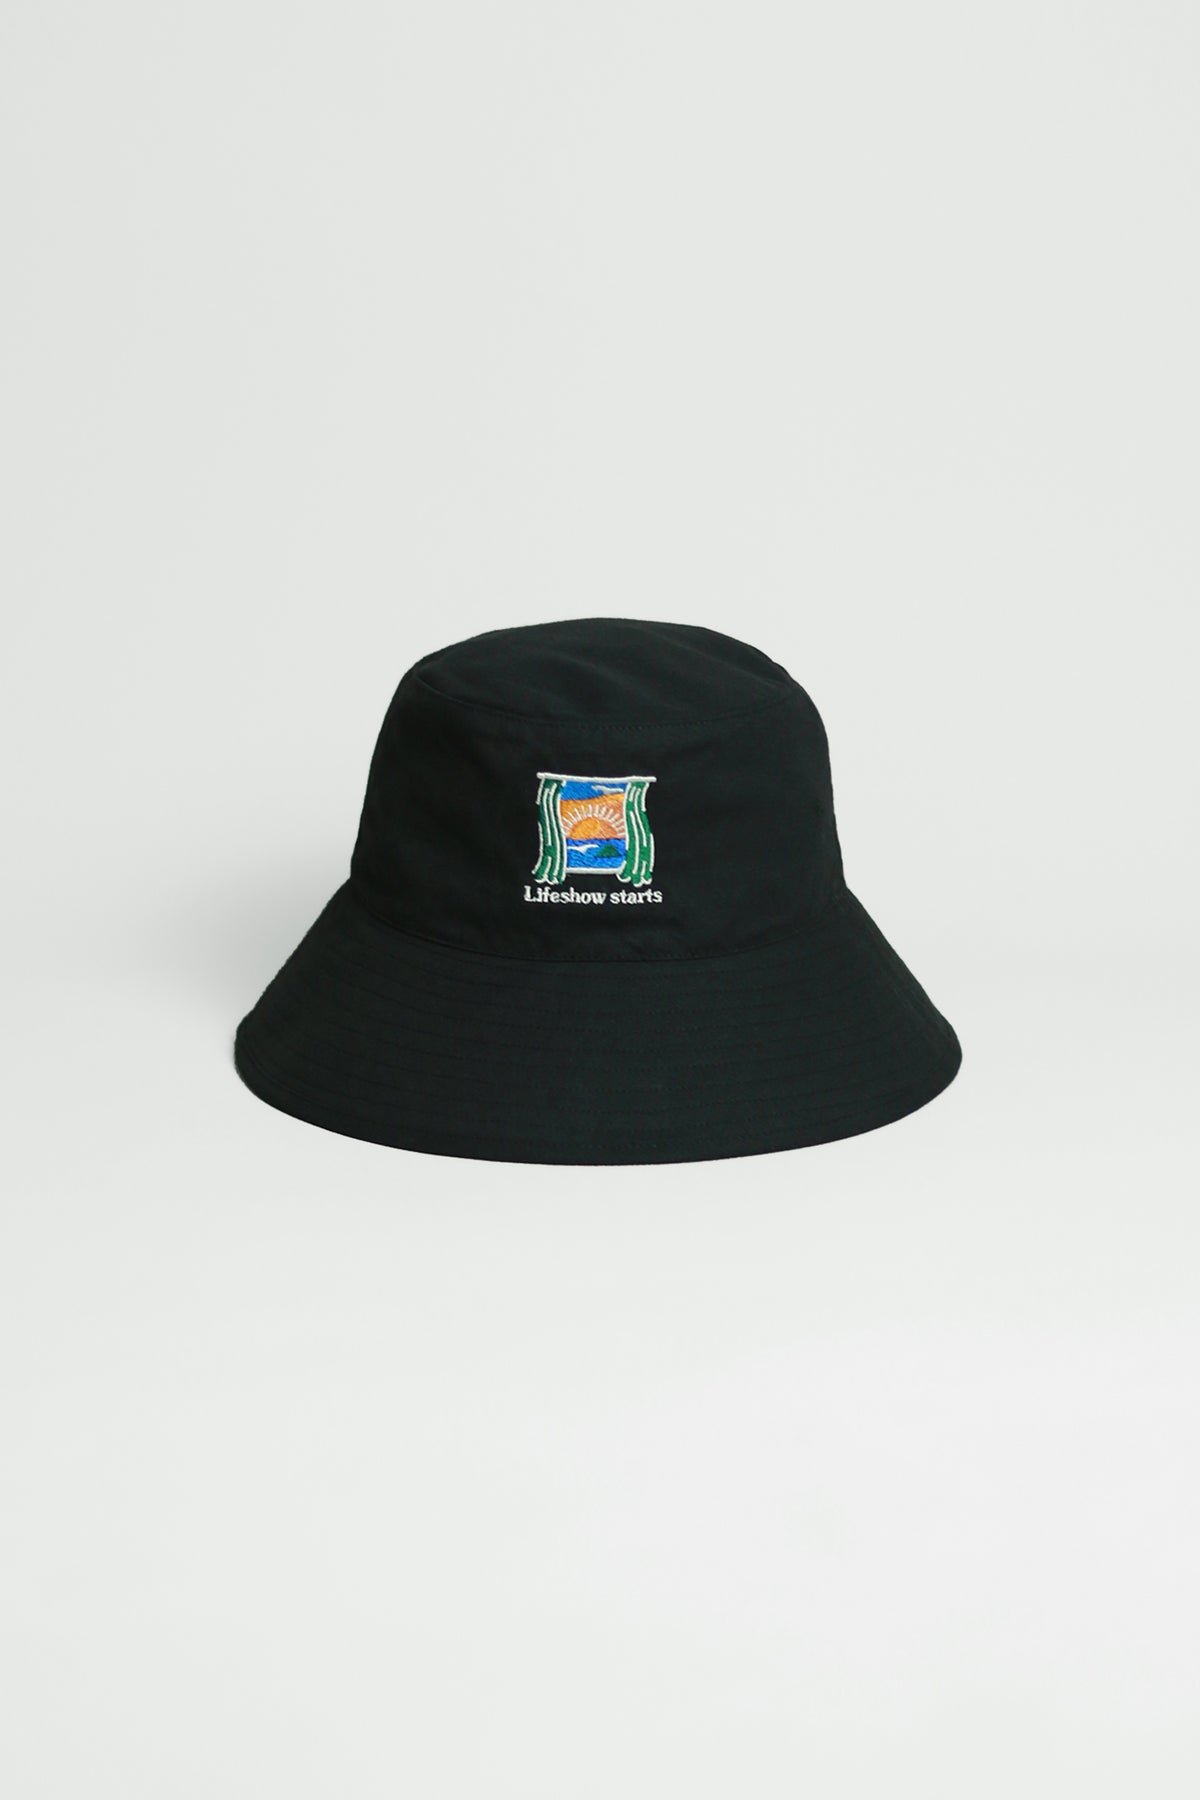 "Image of ""Lifeshow Starts"" Bucket Hat"